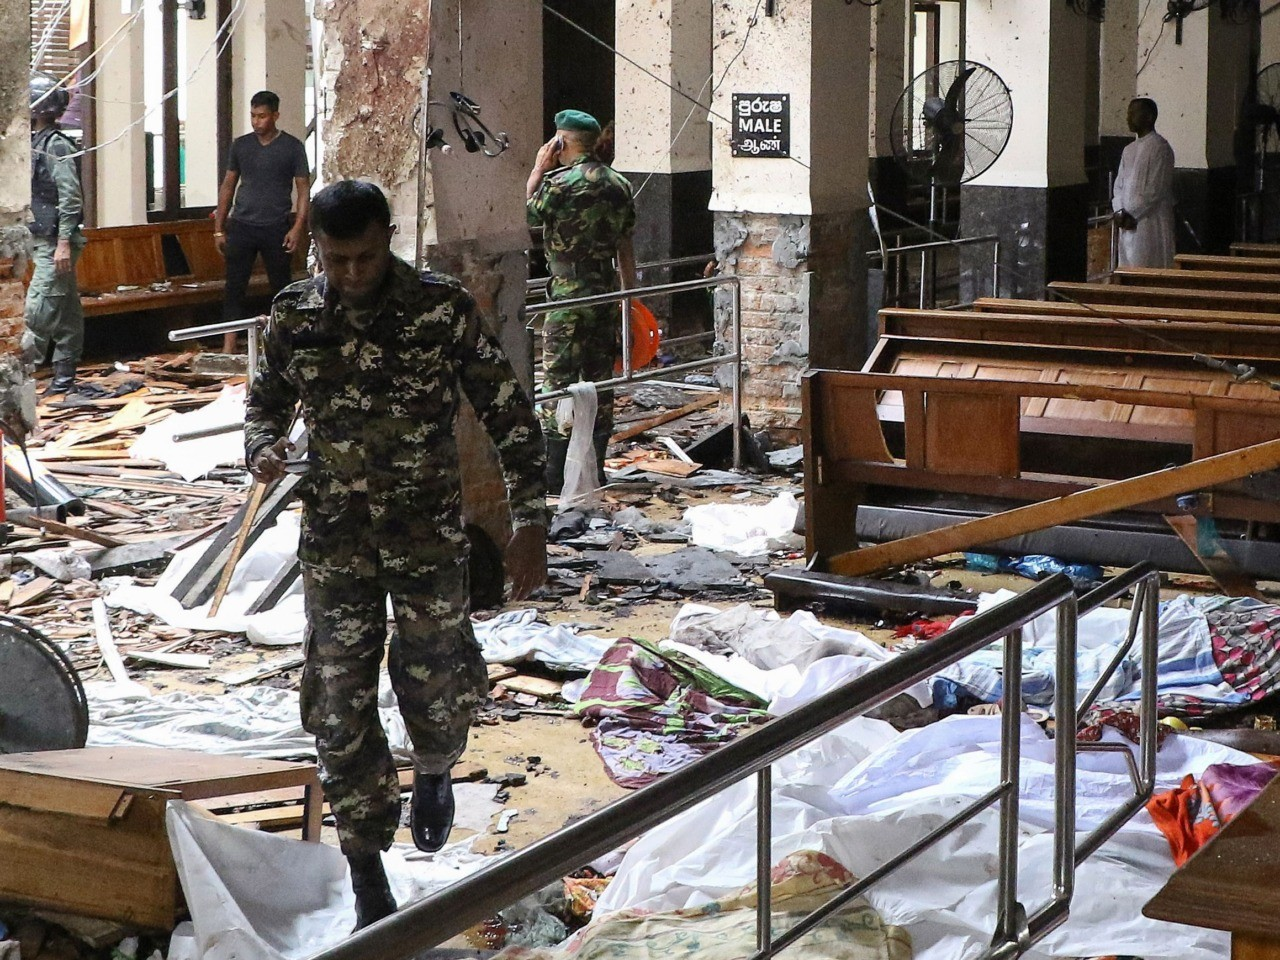 Graphic content / Sri Lankan security personnel walk past dead bodies covered with blankets amid blast debris at St. Anthony's Shrine following an explosion in the church in Kochchikade in Colombo on April 21, 2019. - A string of blasts ripped through high-end hotels and churches holding Easter services in Sri Lanka on April 21, killing at least 156 people, including 35 foreigners. (Photo by ISHARA S. KODIKARA / AFP) (Photo credit should read ISHARA S. KODIKARA/AFP/Getty Images)